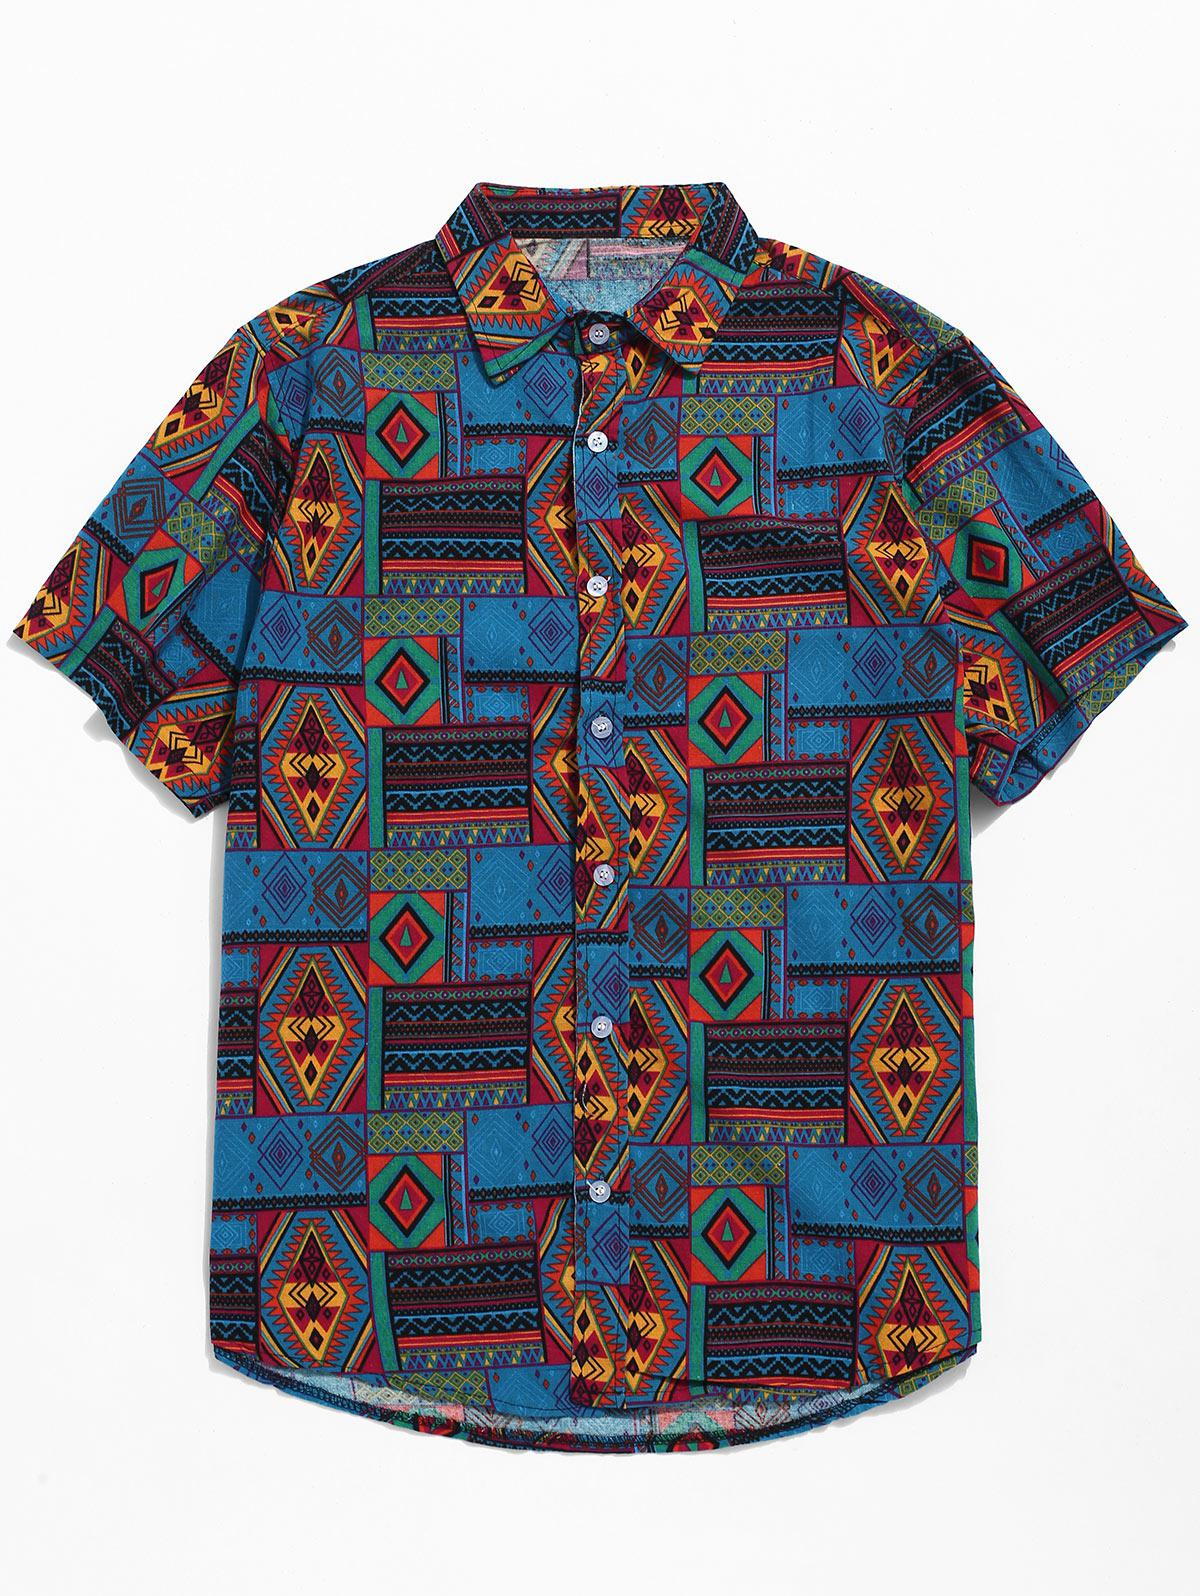 Ethnic Tribal Geometric Print Short Sleeves Shirt фото